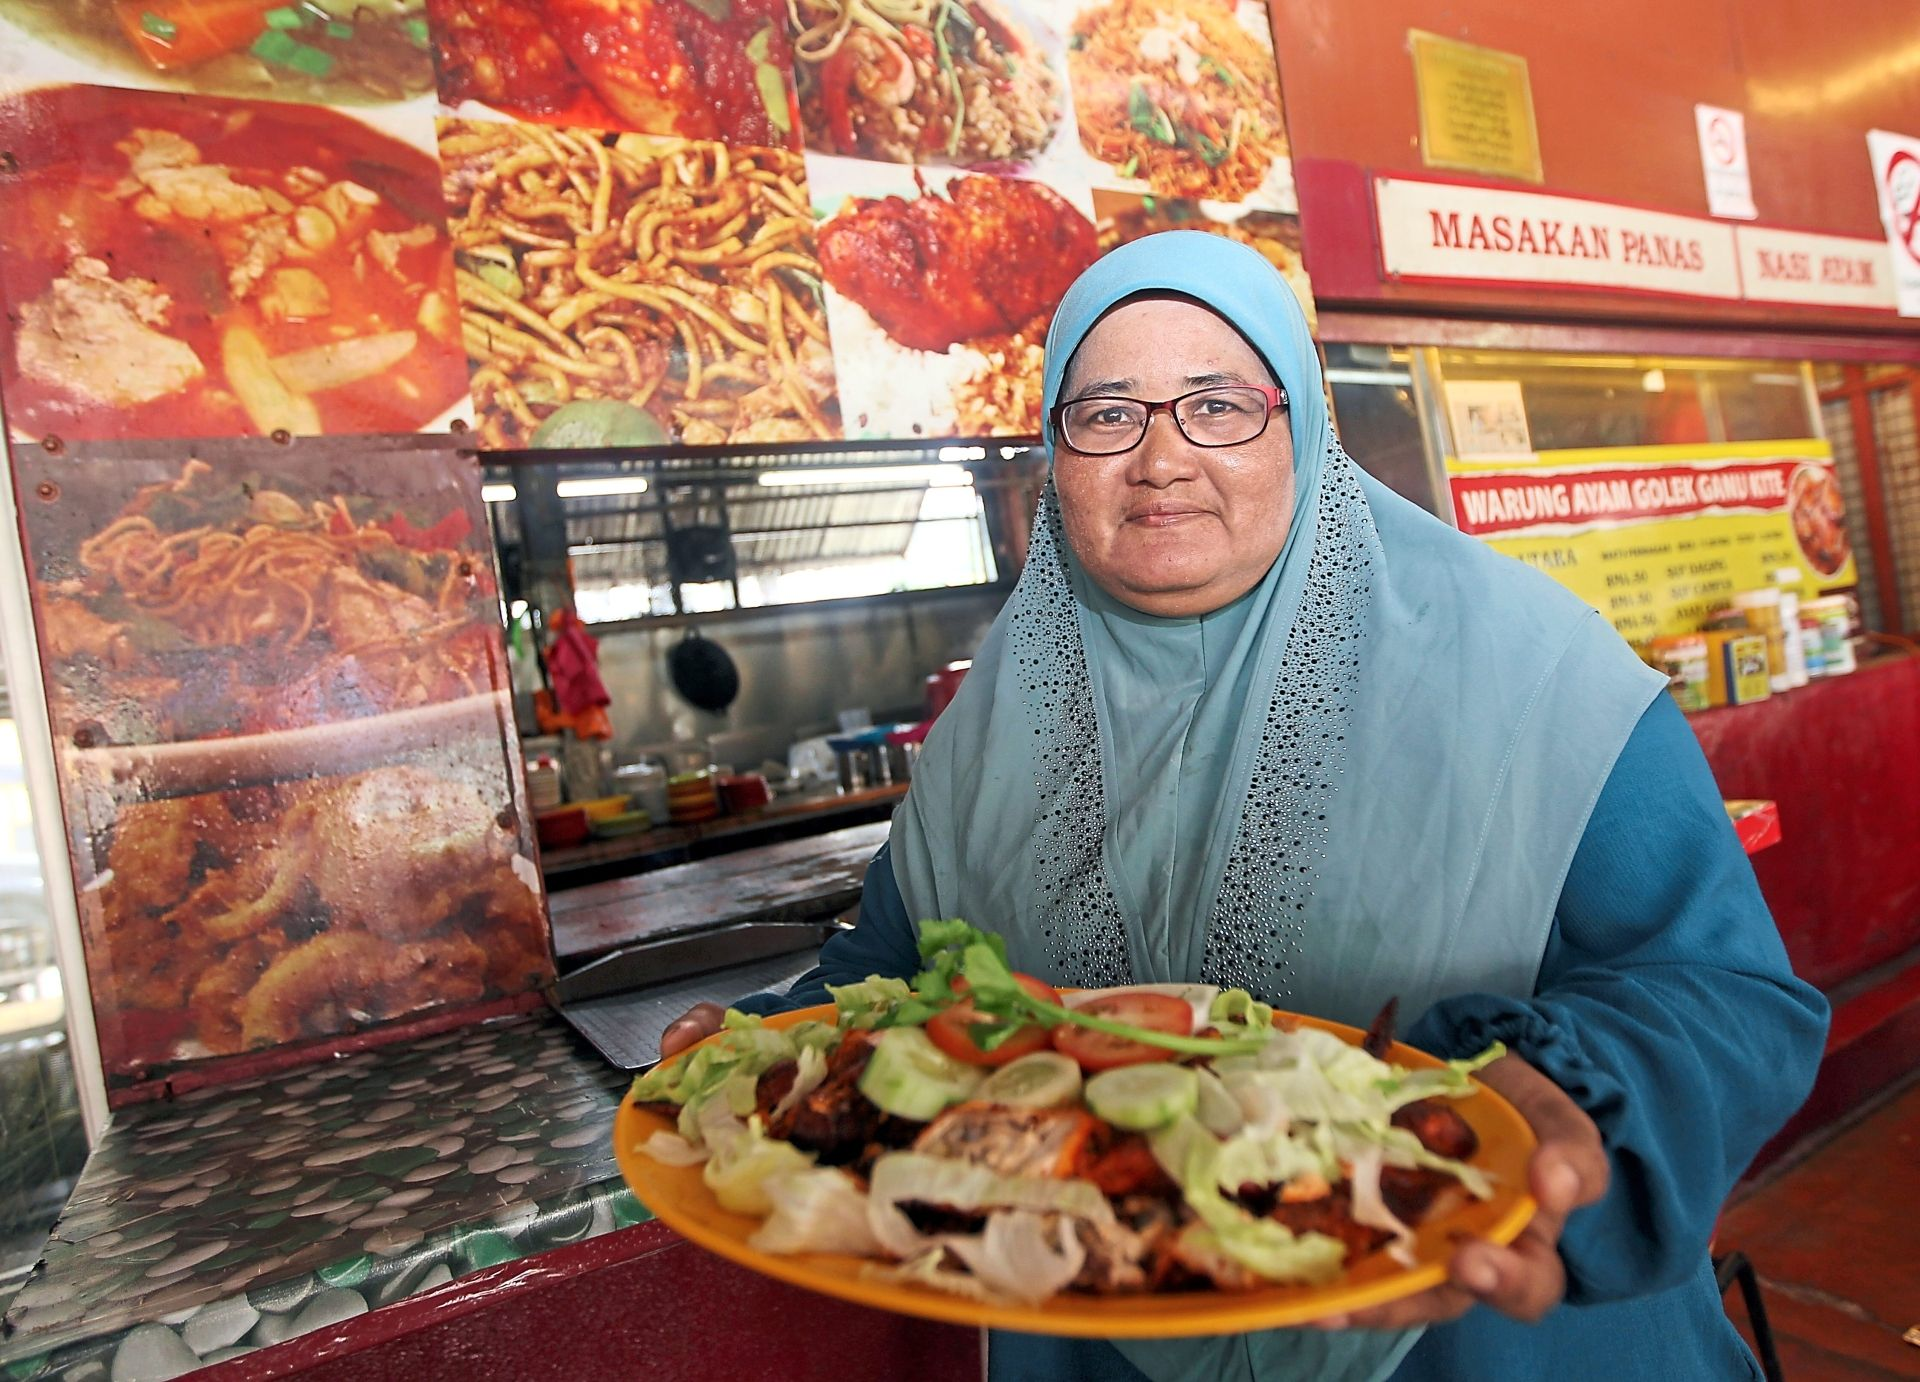 Mahani says the stall gets crowded on weekends. — Photos: KAMARUL ARIFFIN/The Star